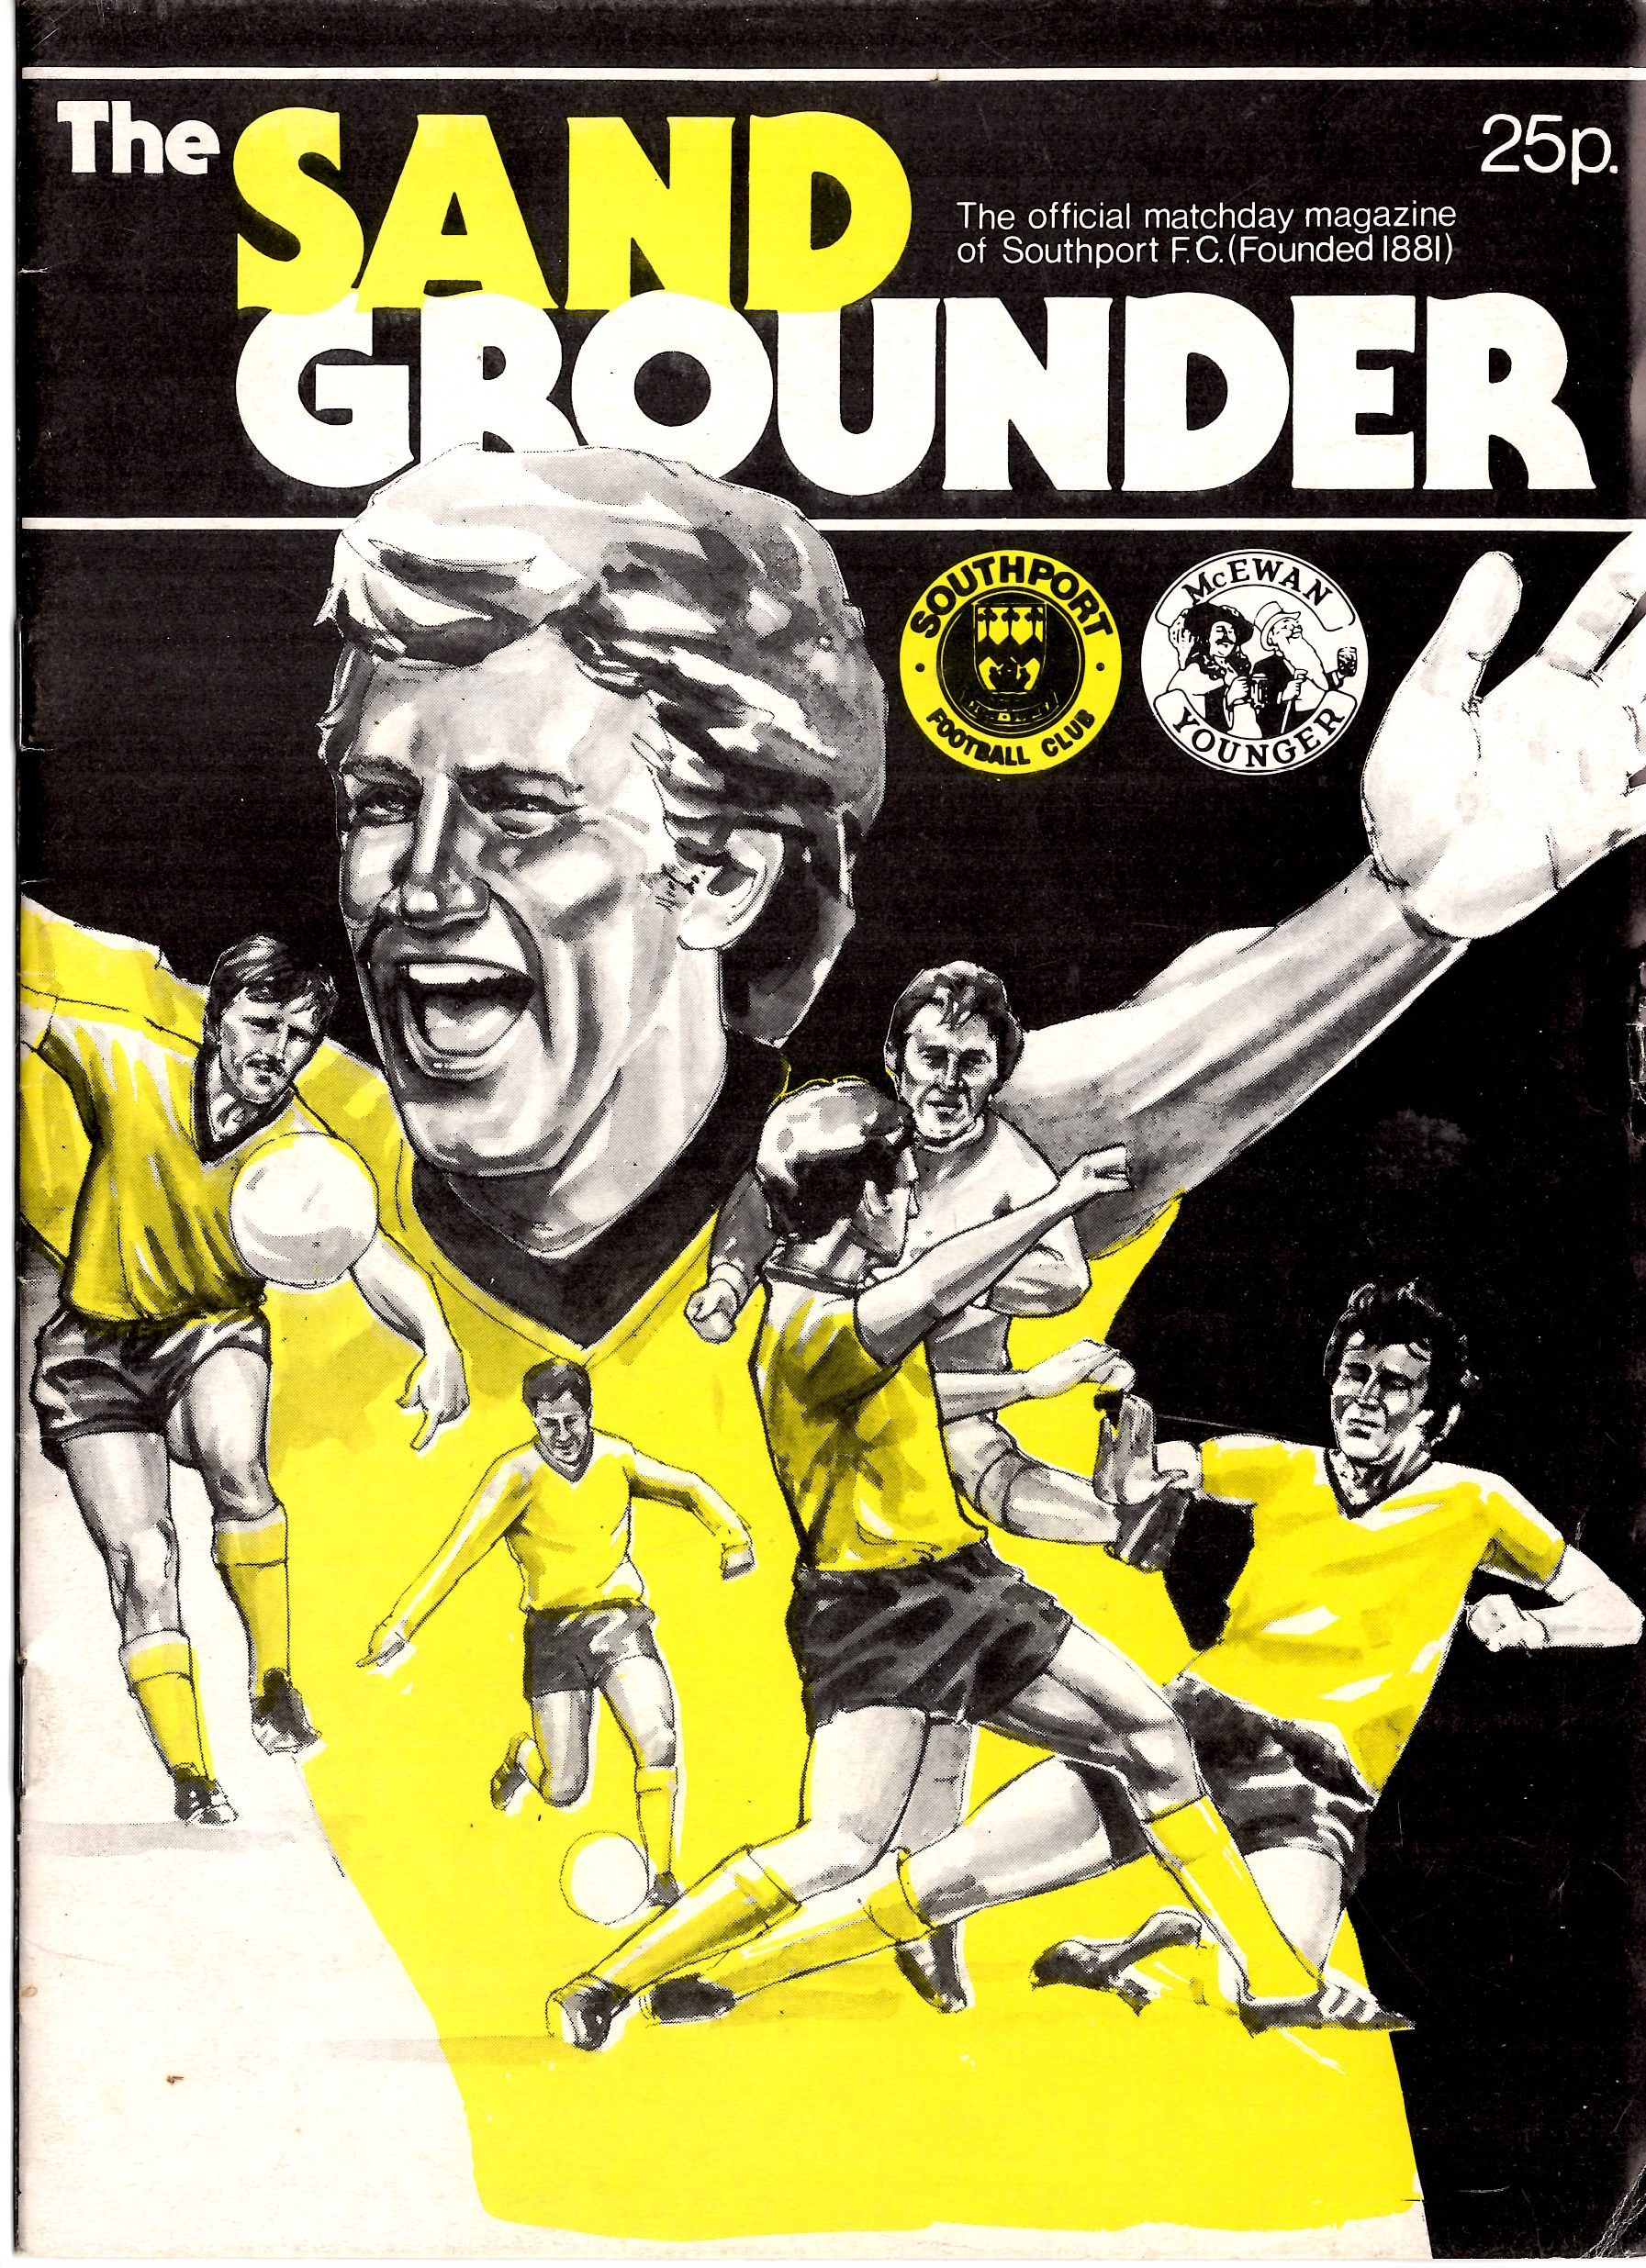 1984-86 Programme Cover